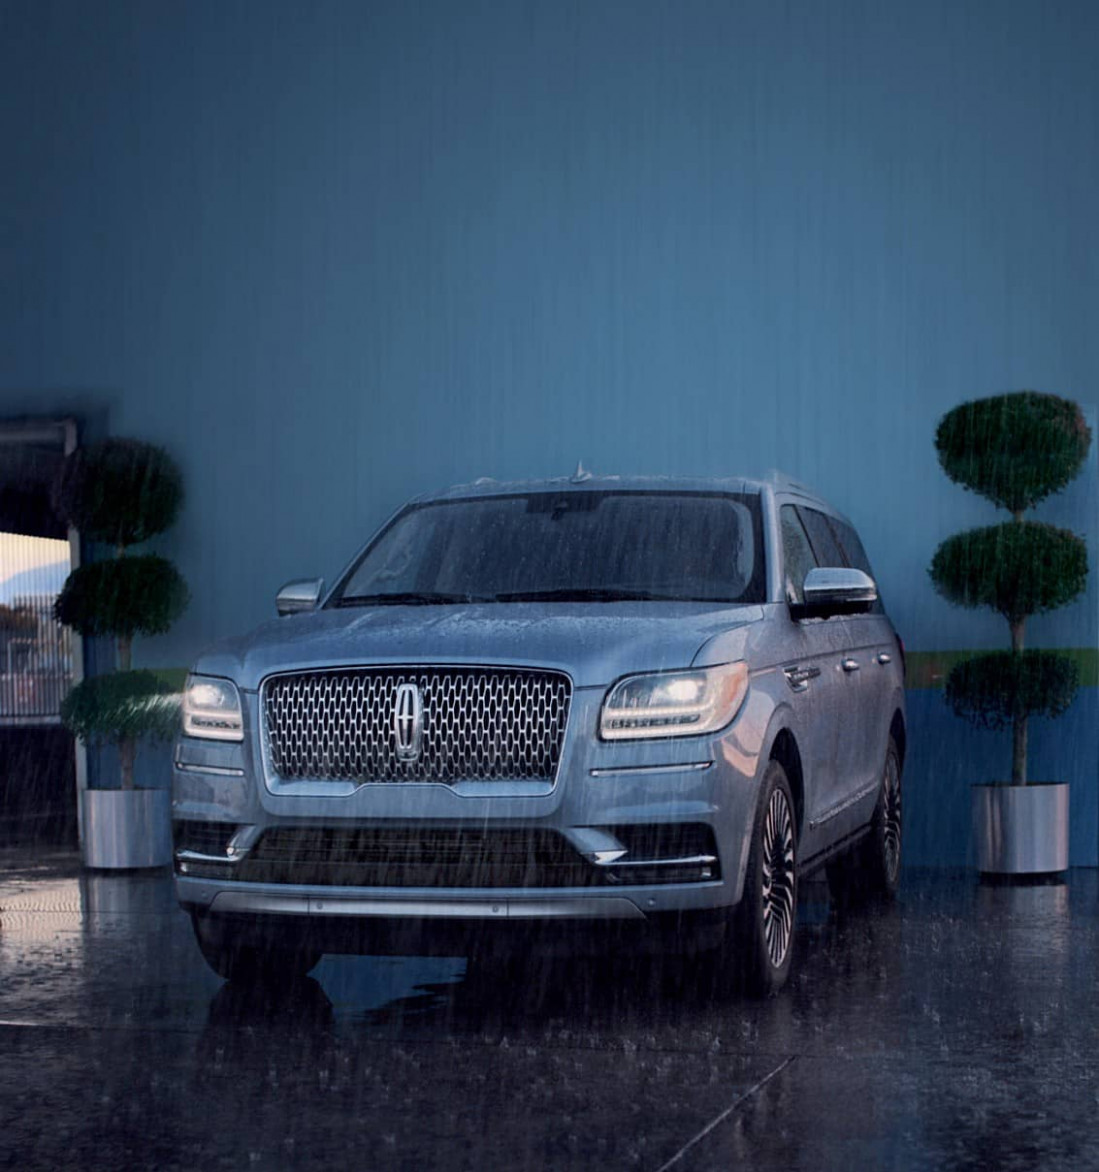 The 8 Lincoln Mark LT Look Better With New Concept Design ..